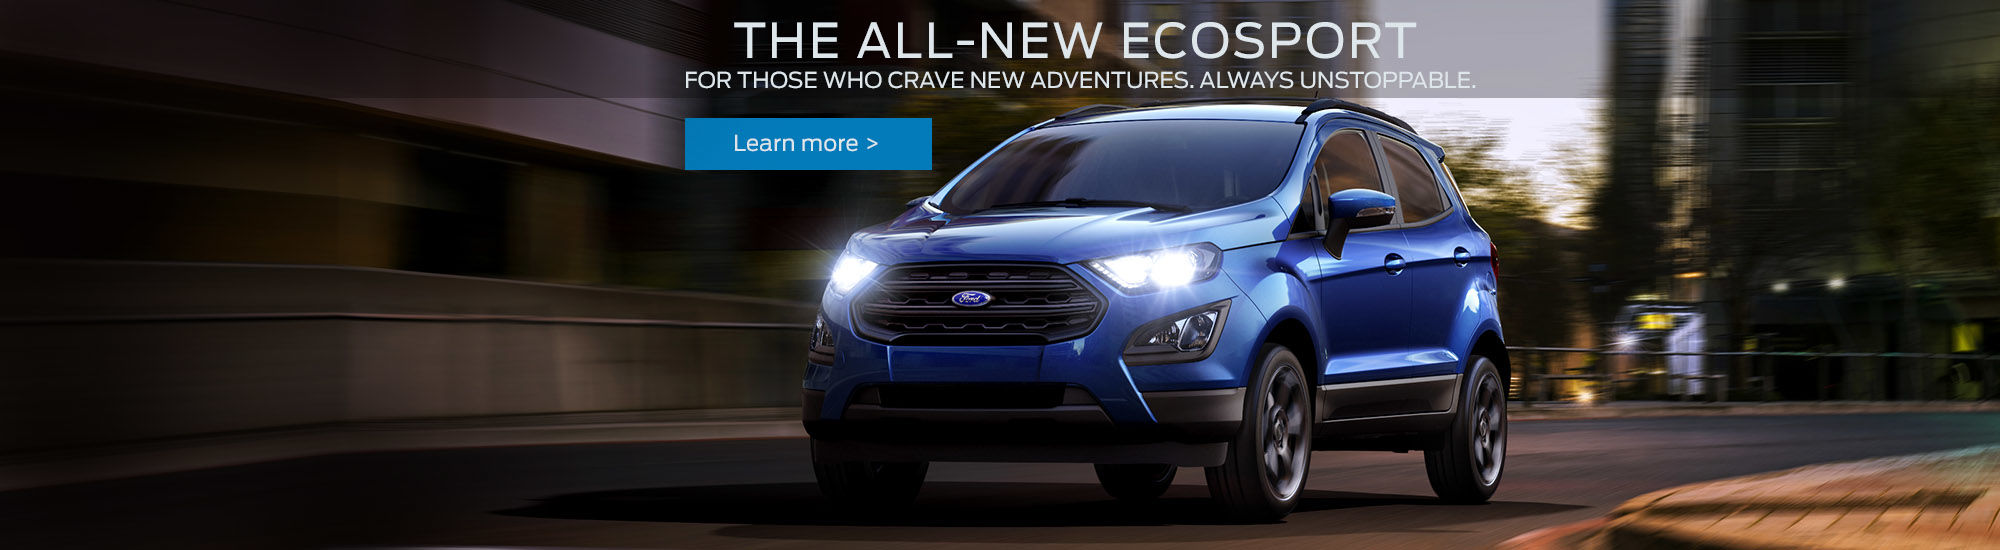 The all new Ecosport